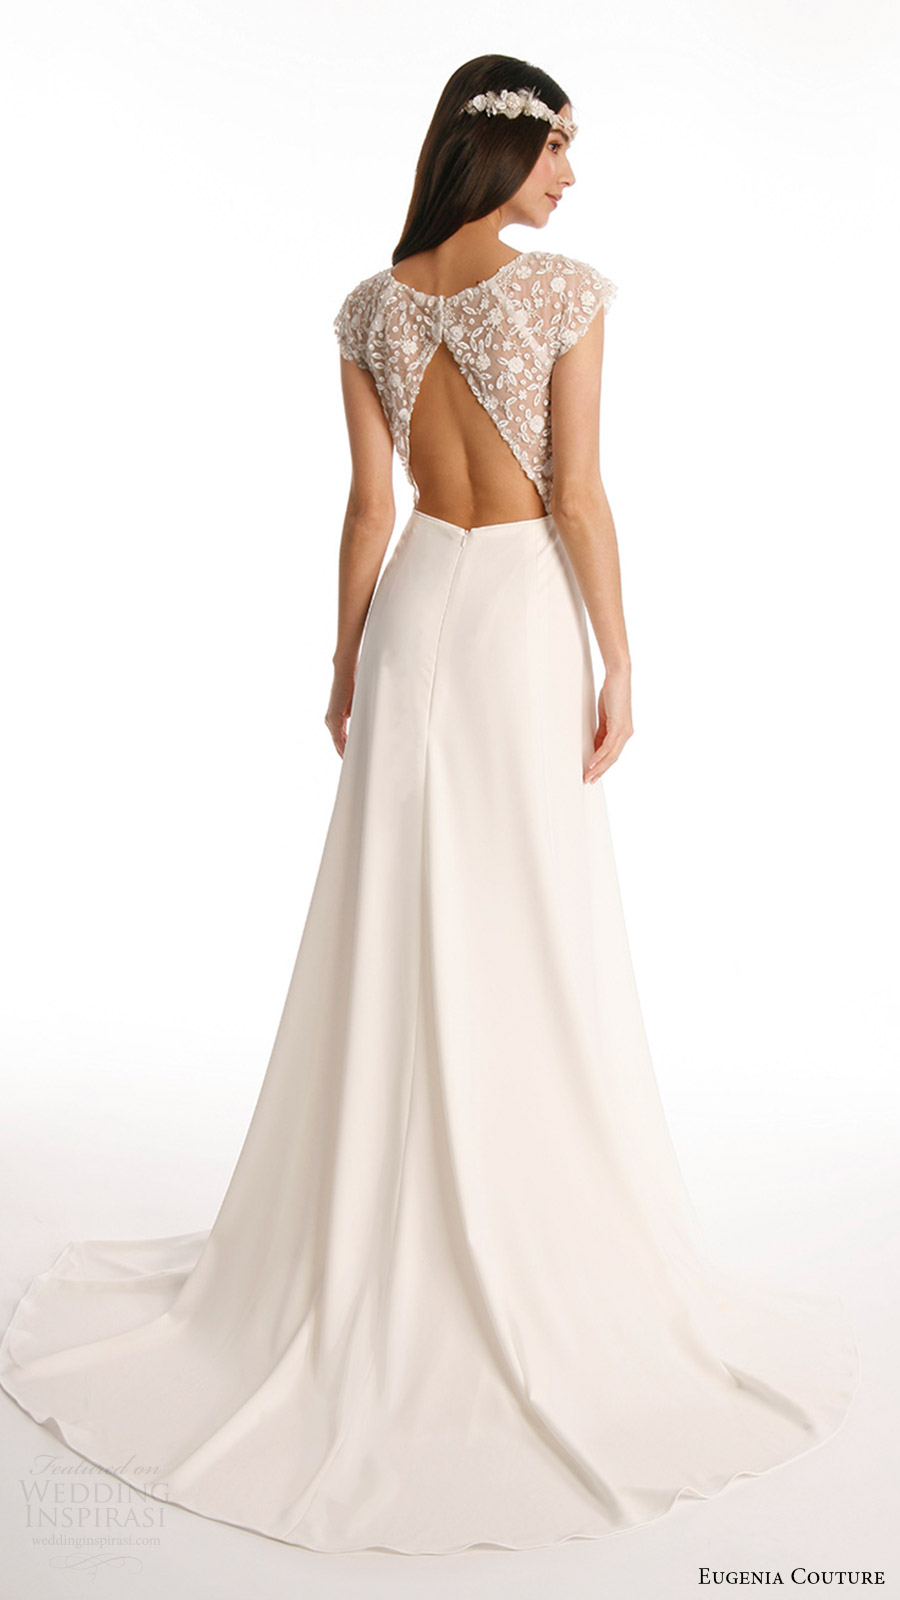 eugenia couture joy bridal spring 2017 beaded cap sleeves vneck crepe aline wedding dress (vanessa) bv slit skirt keyhole back train